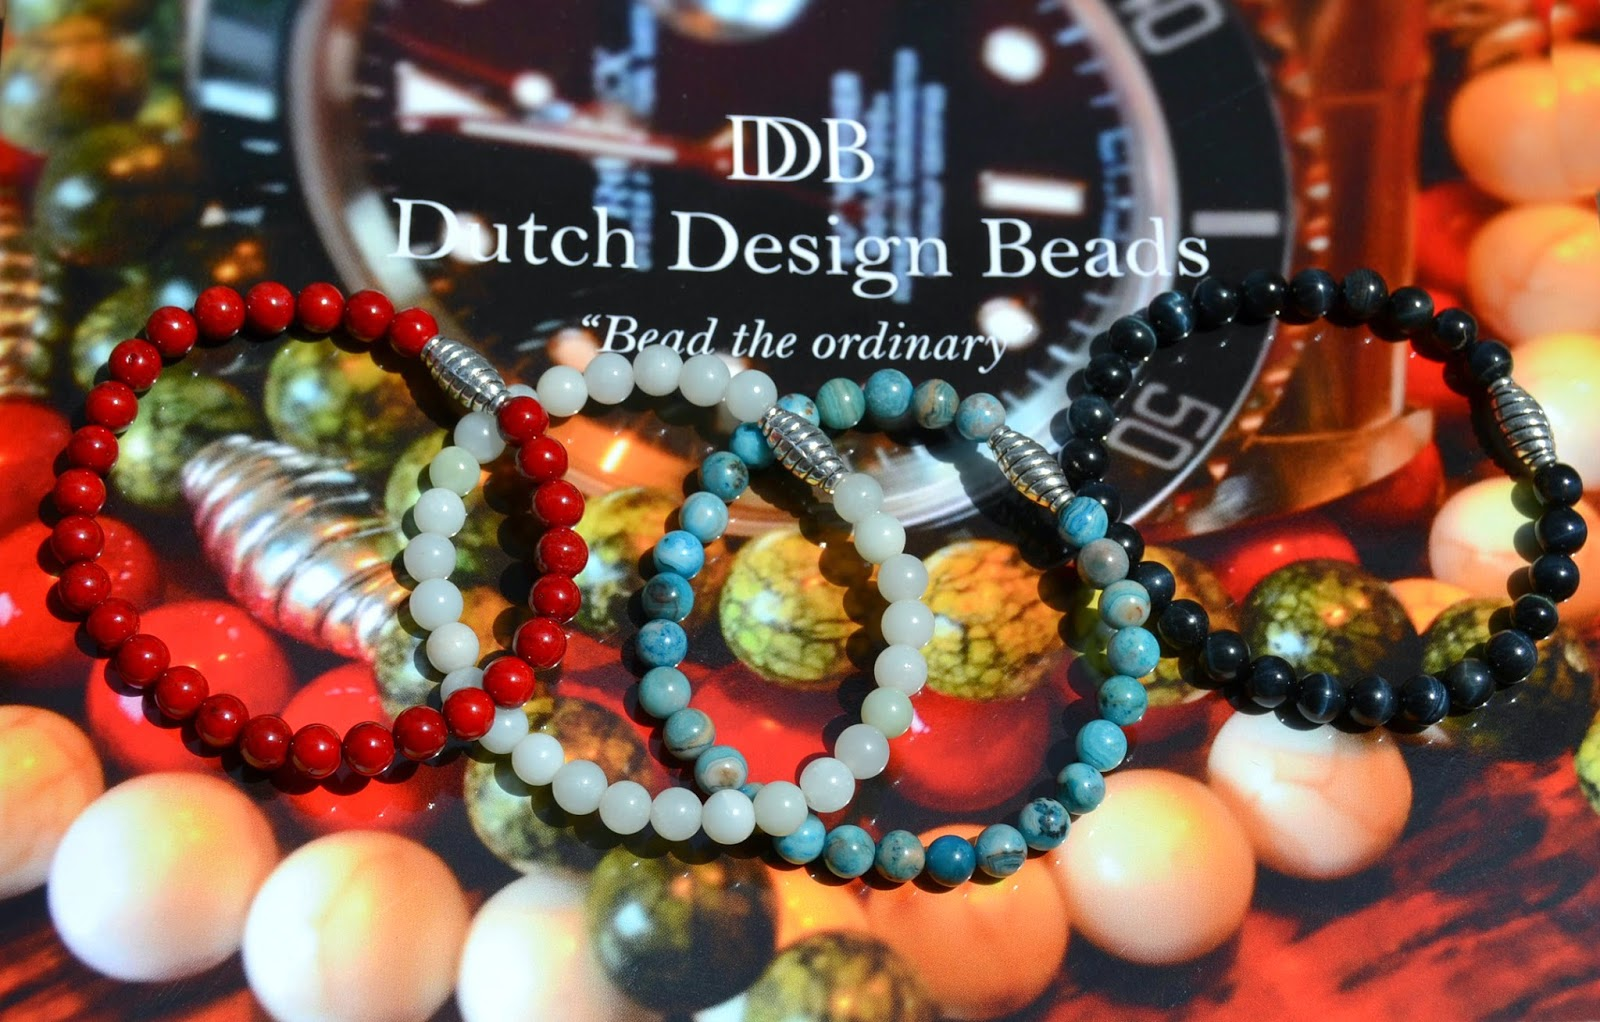 http://www.syriouslyinfashion.com/2014/07/dutch-design-beads-bead-ordinary.html